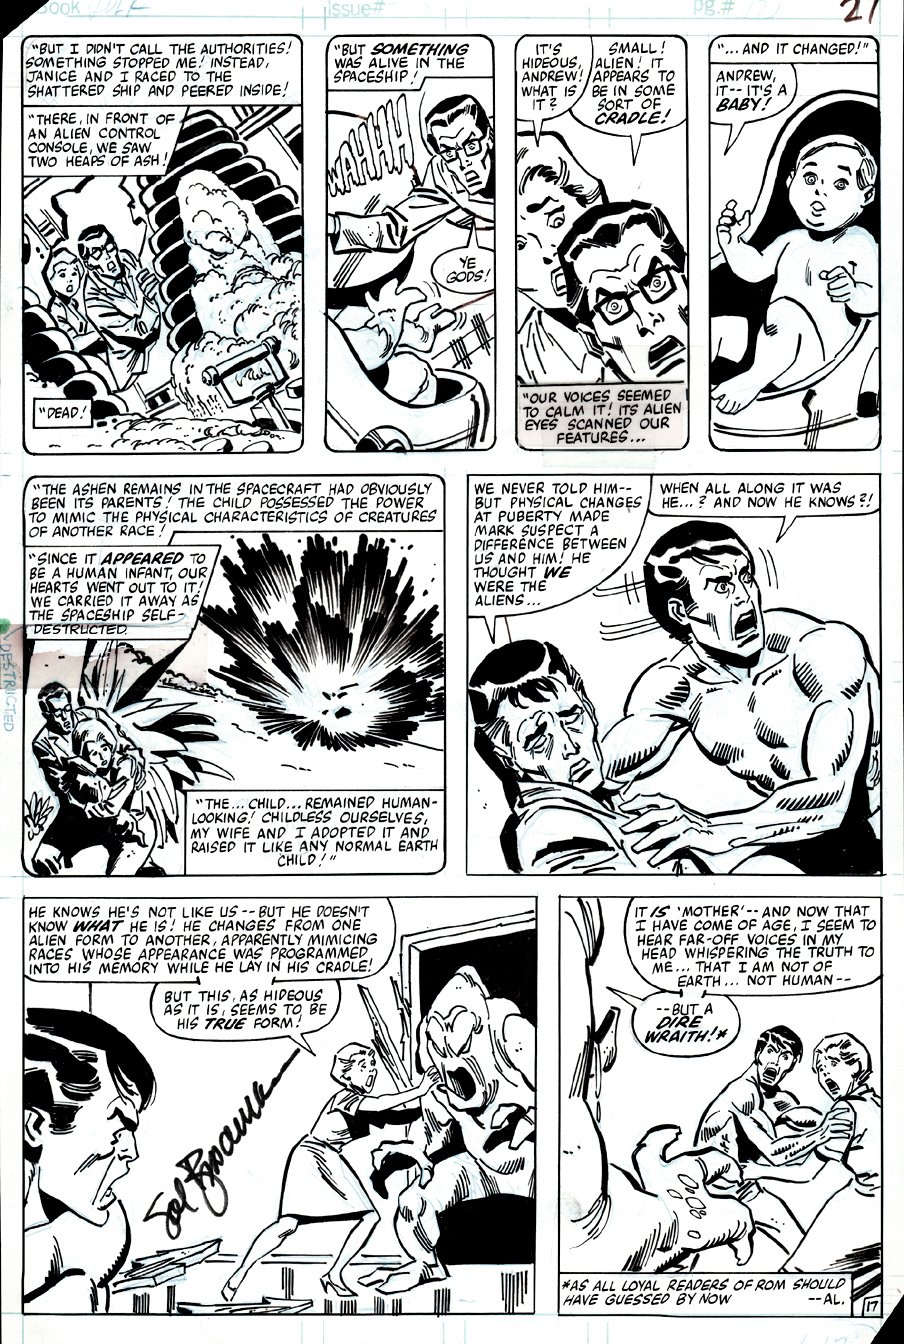 Incredible Hulk #262 p 17 (BRUCE BANNER CONFRONTS THE